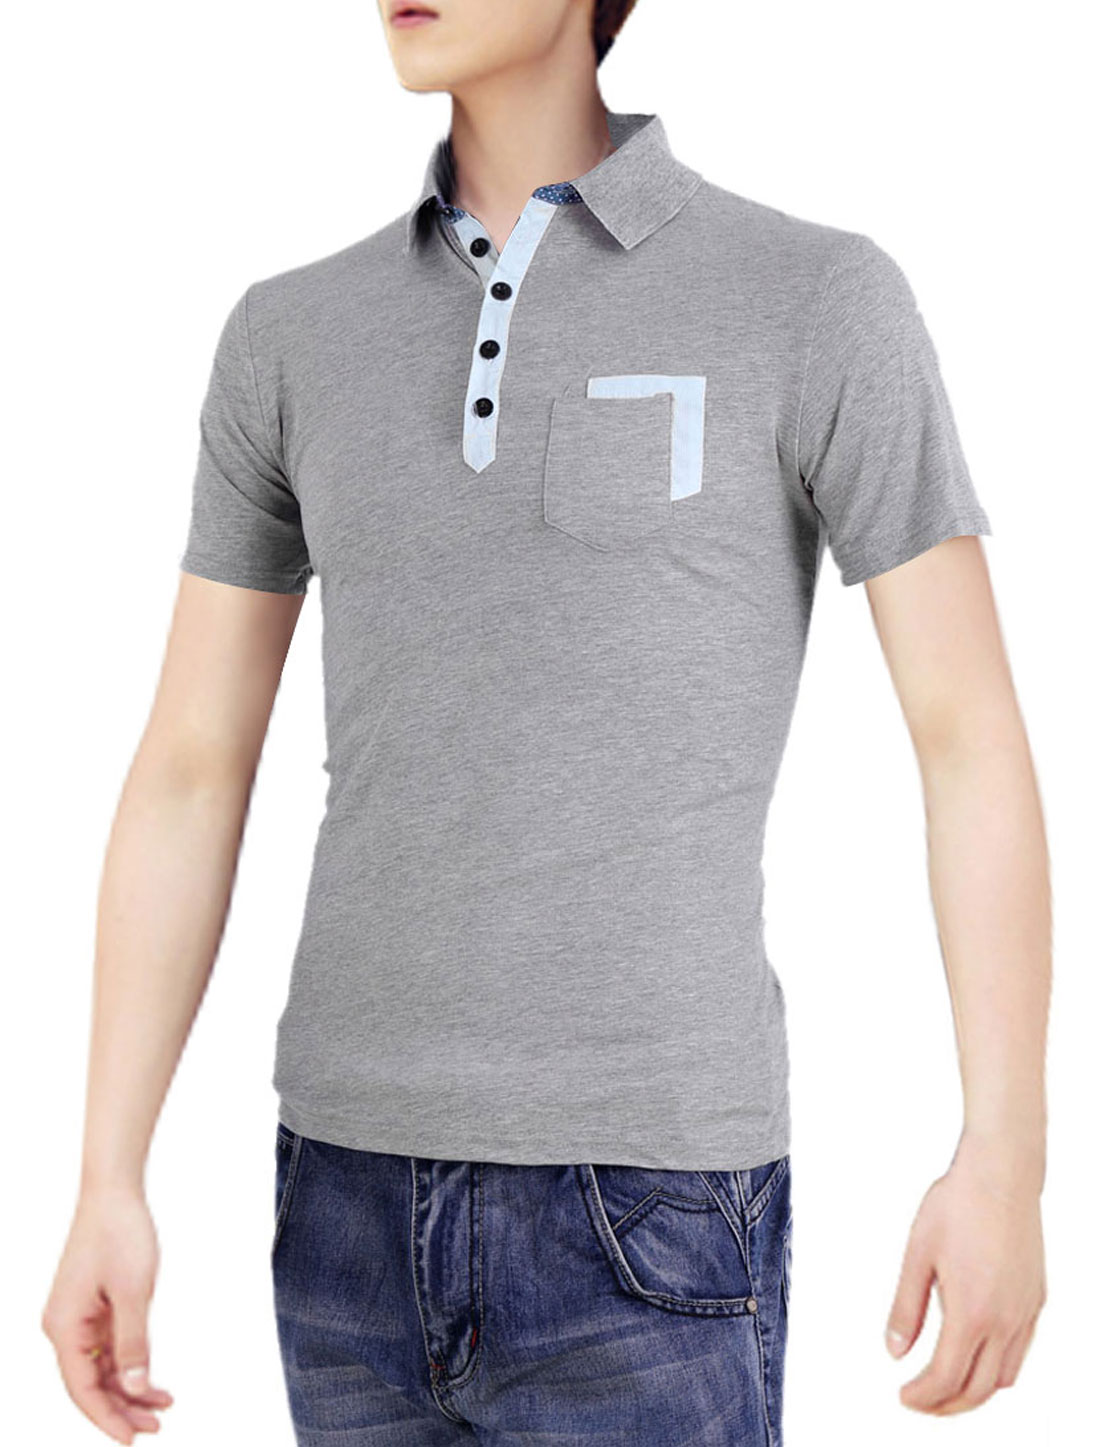 Light Grey S Men Breast Pocket Summer Fashion Pure Color Polo Shirt